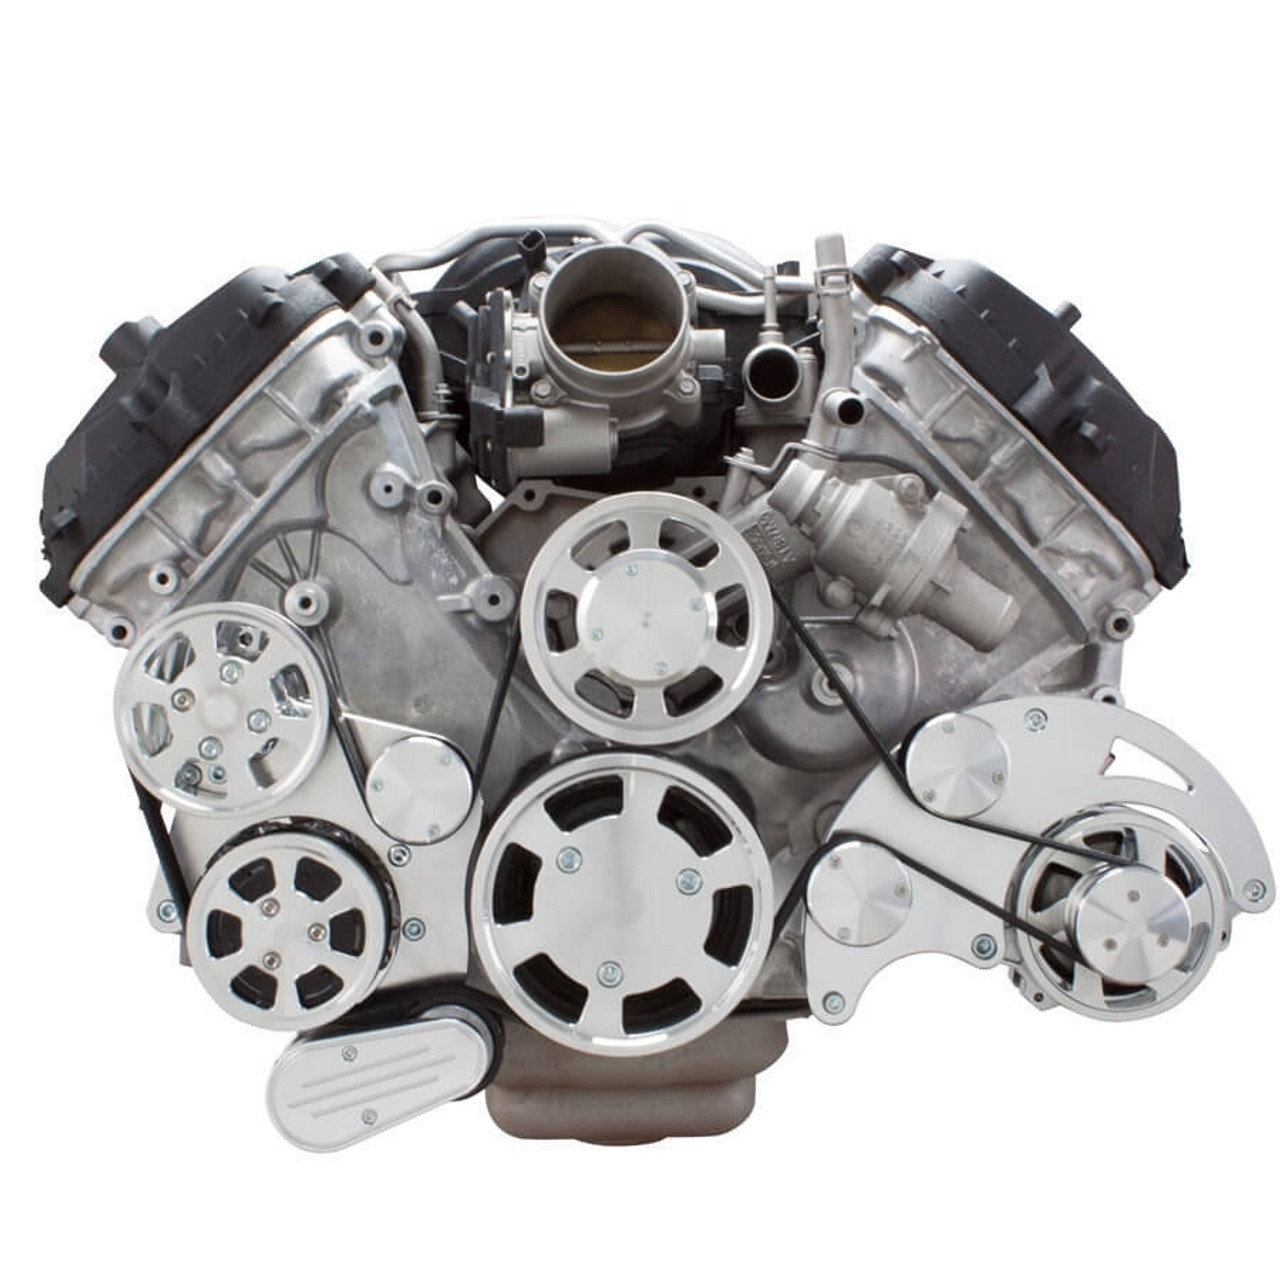 serpentine system for ford coyote 5 0 ac, power steering \u0026 alternator all inclusive 1986 Ford Alternator Wiring